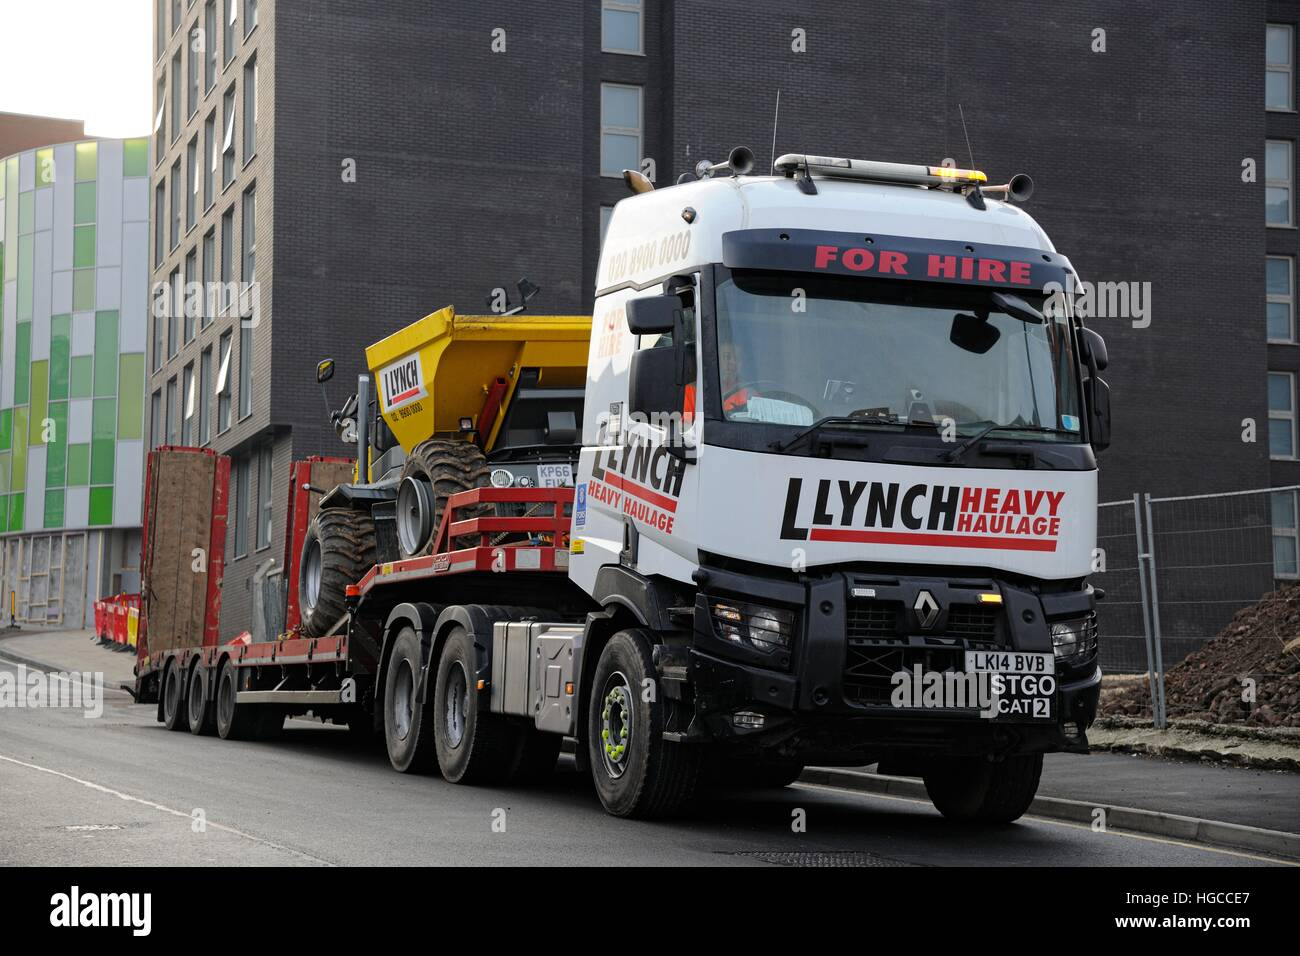 lynch haulage renault stgo cat 2 low loader heavy truck waiting with stock photo 130580303 alamy. Black Bedroom Furniture Sets. Home Design Ideas